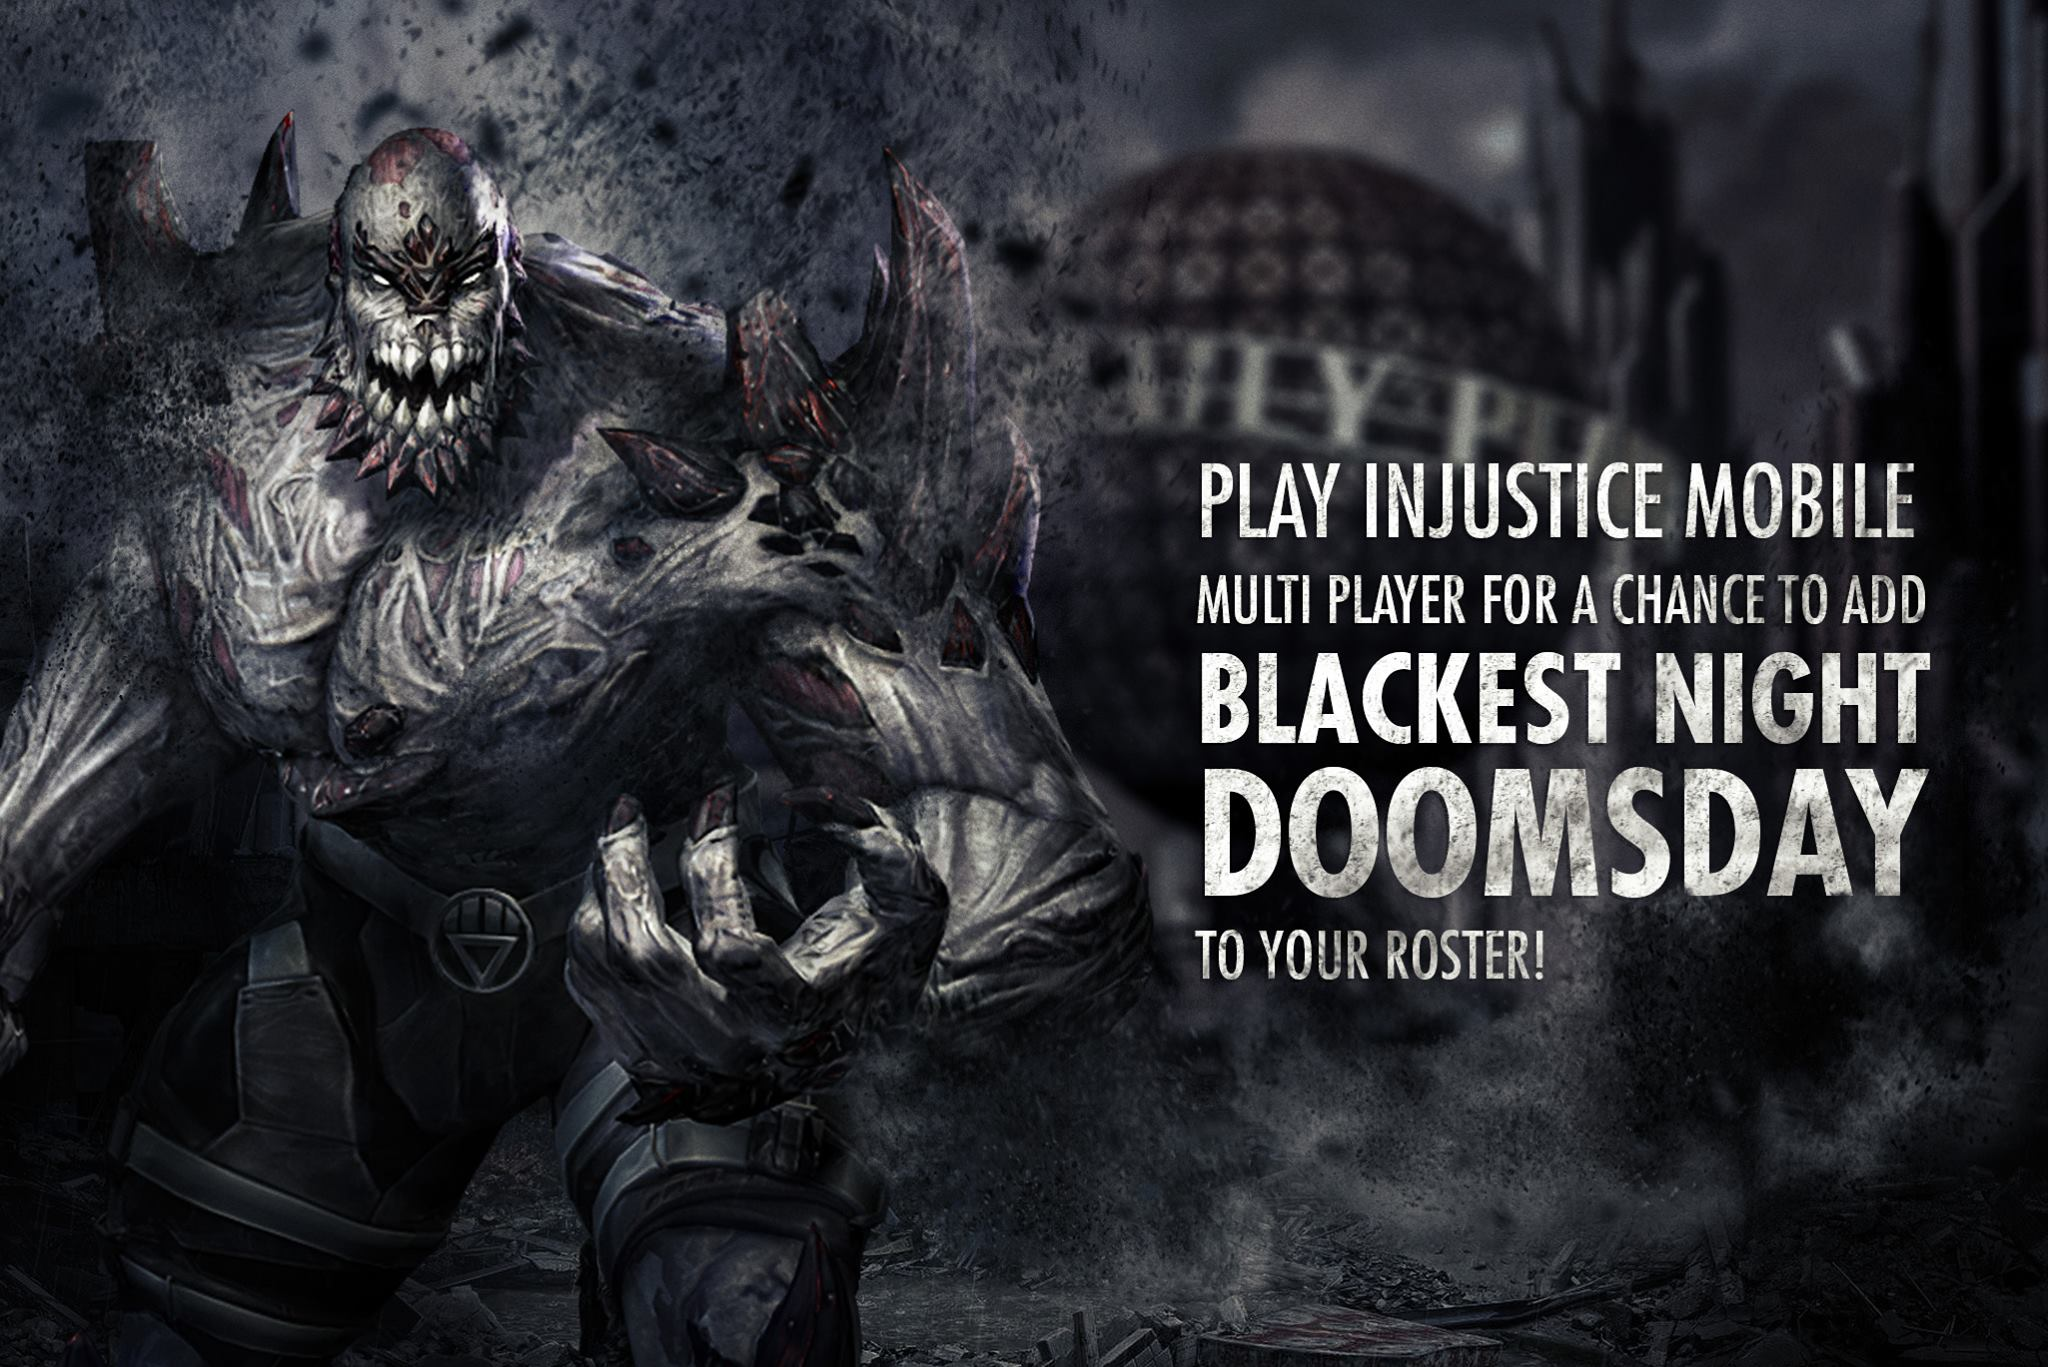 Draw 3d Online Blackest Night Doomsday Multiplayer Challenge For